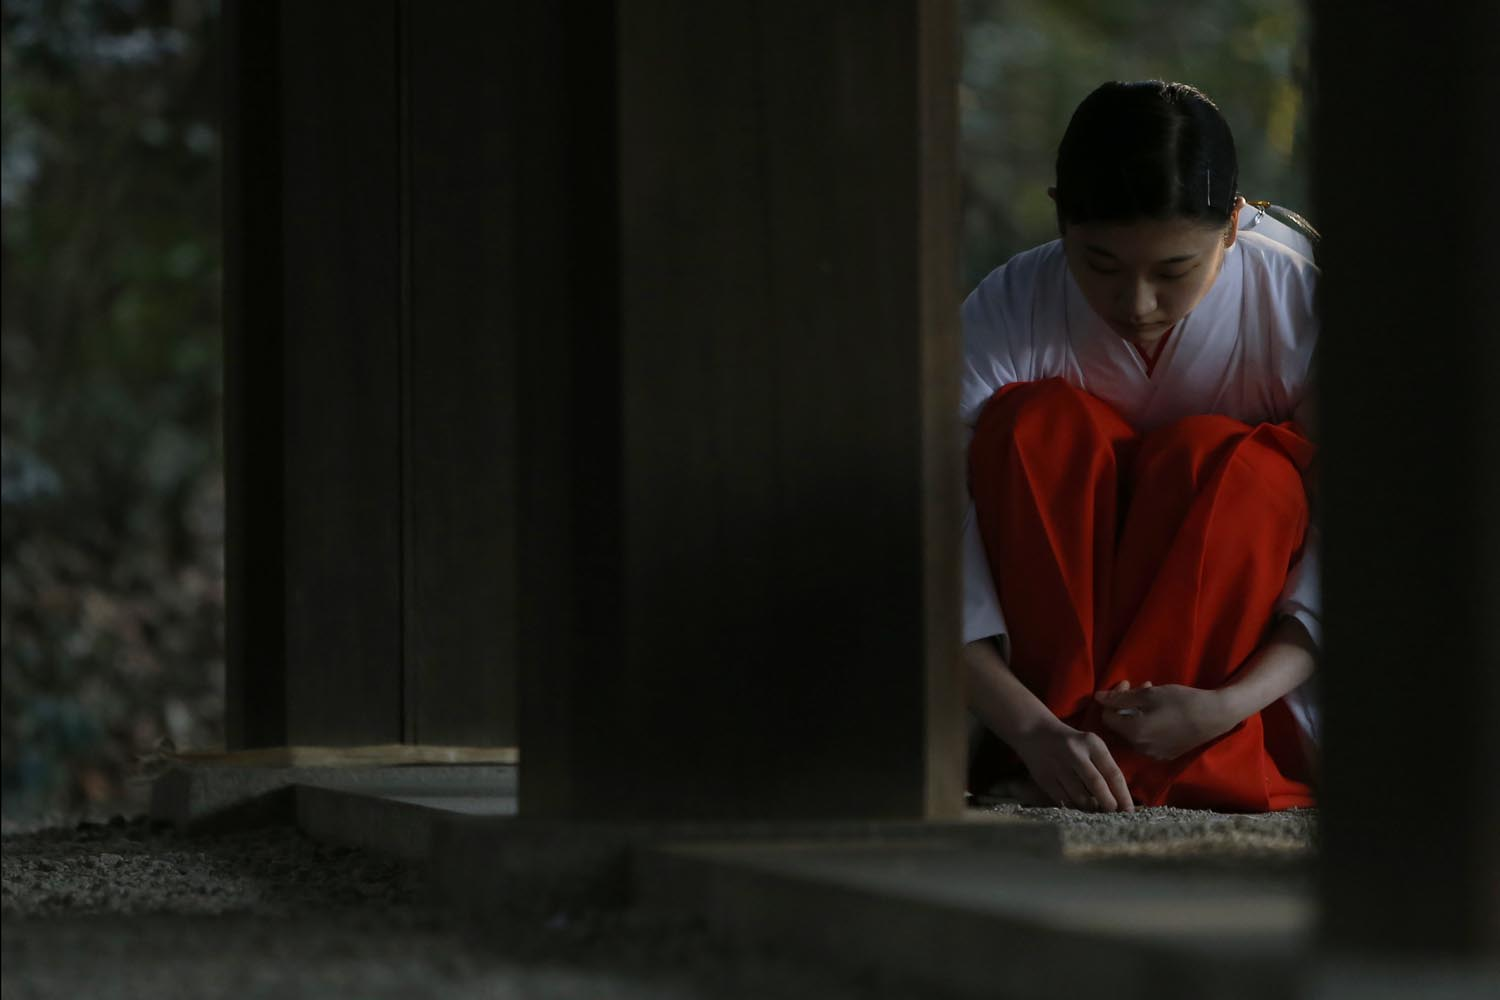 Dec. 31, 2013. A shrine attendant cleans up after a ritual to bid farewell to 2013 and prepare for the new year at the Meiji Shrine in Tokyo.